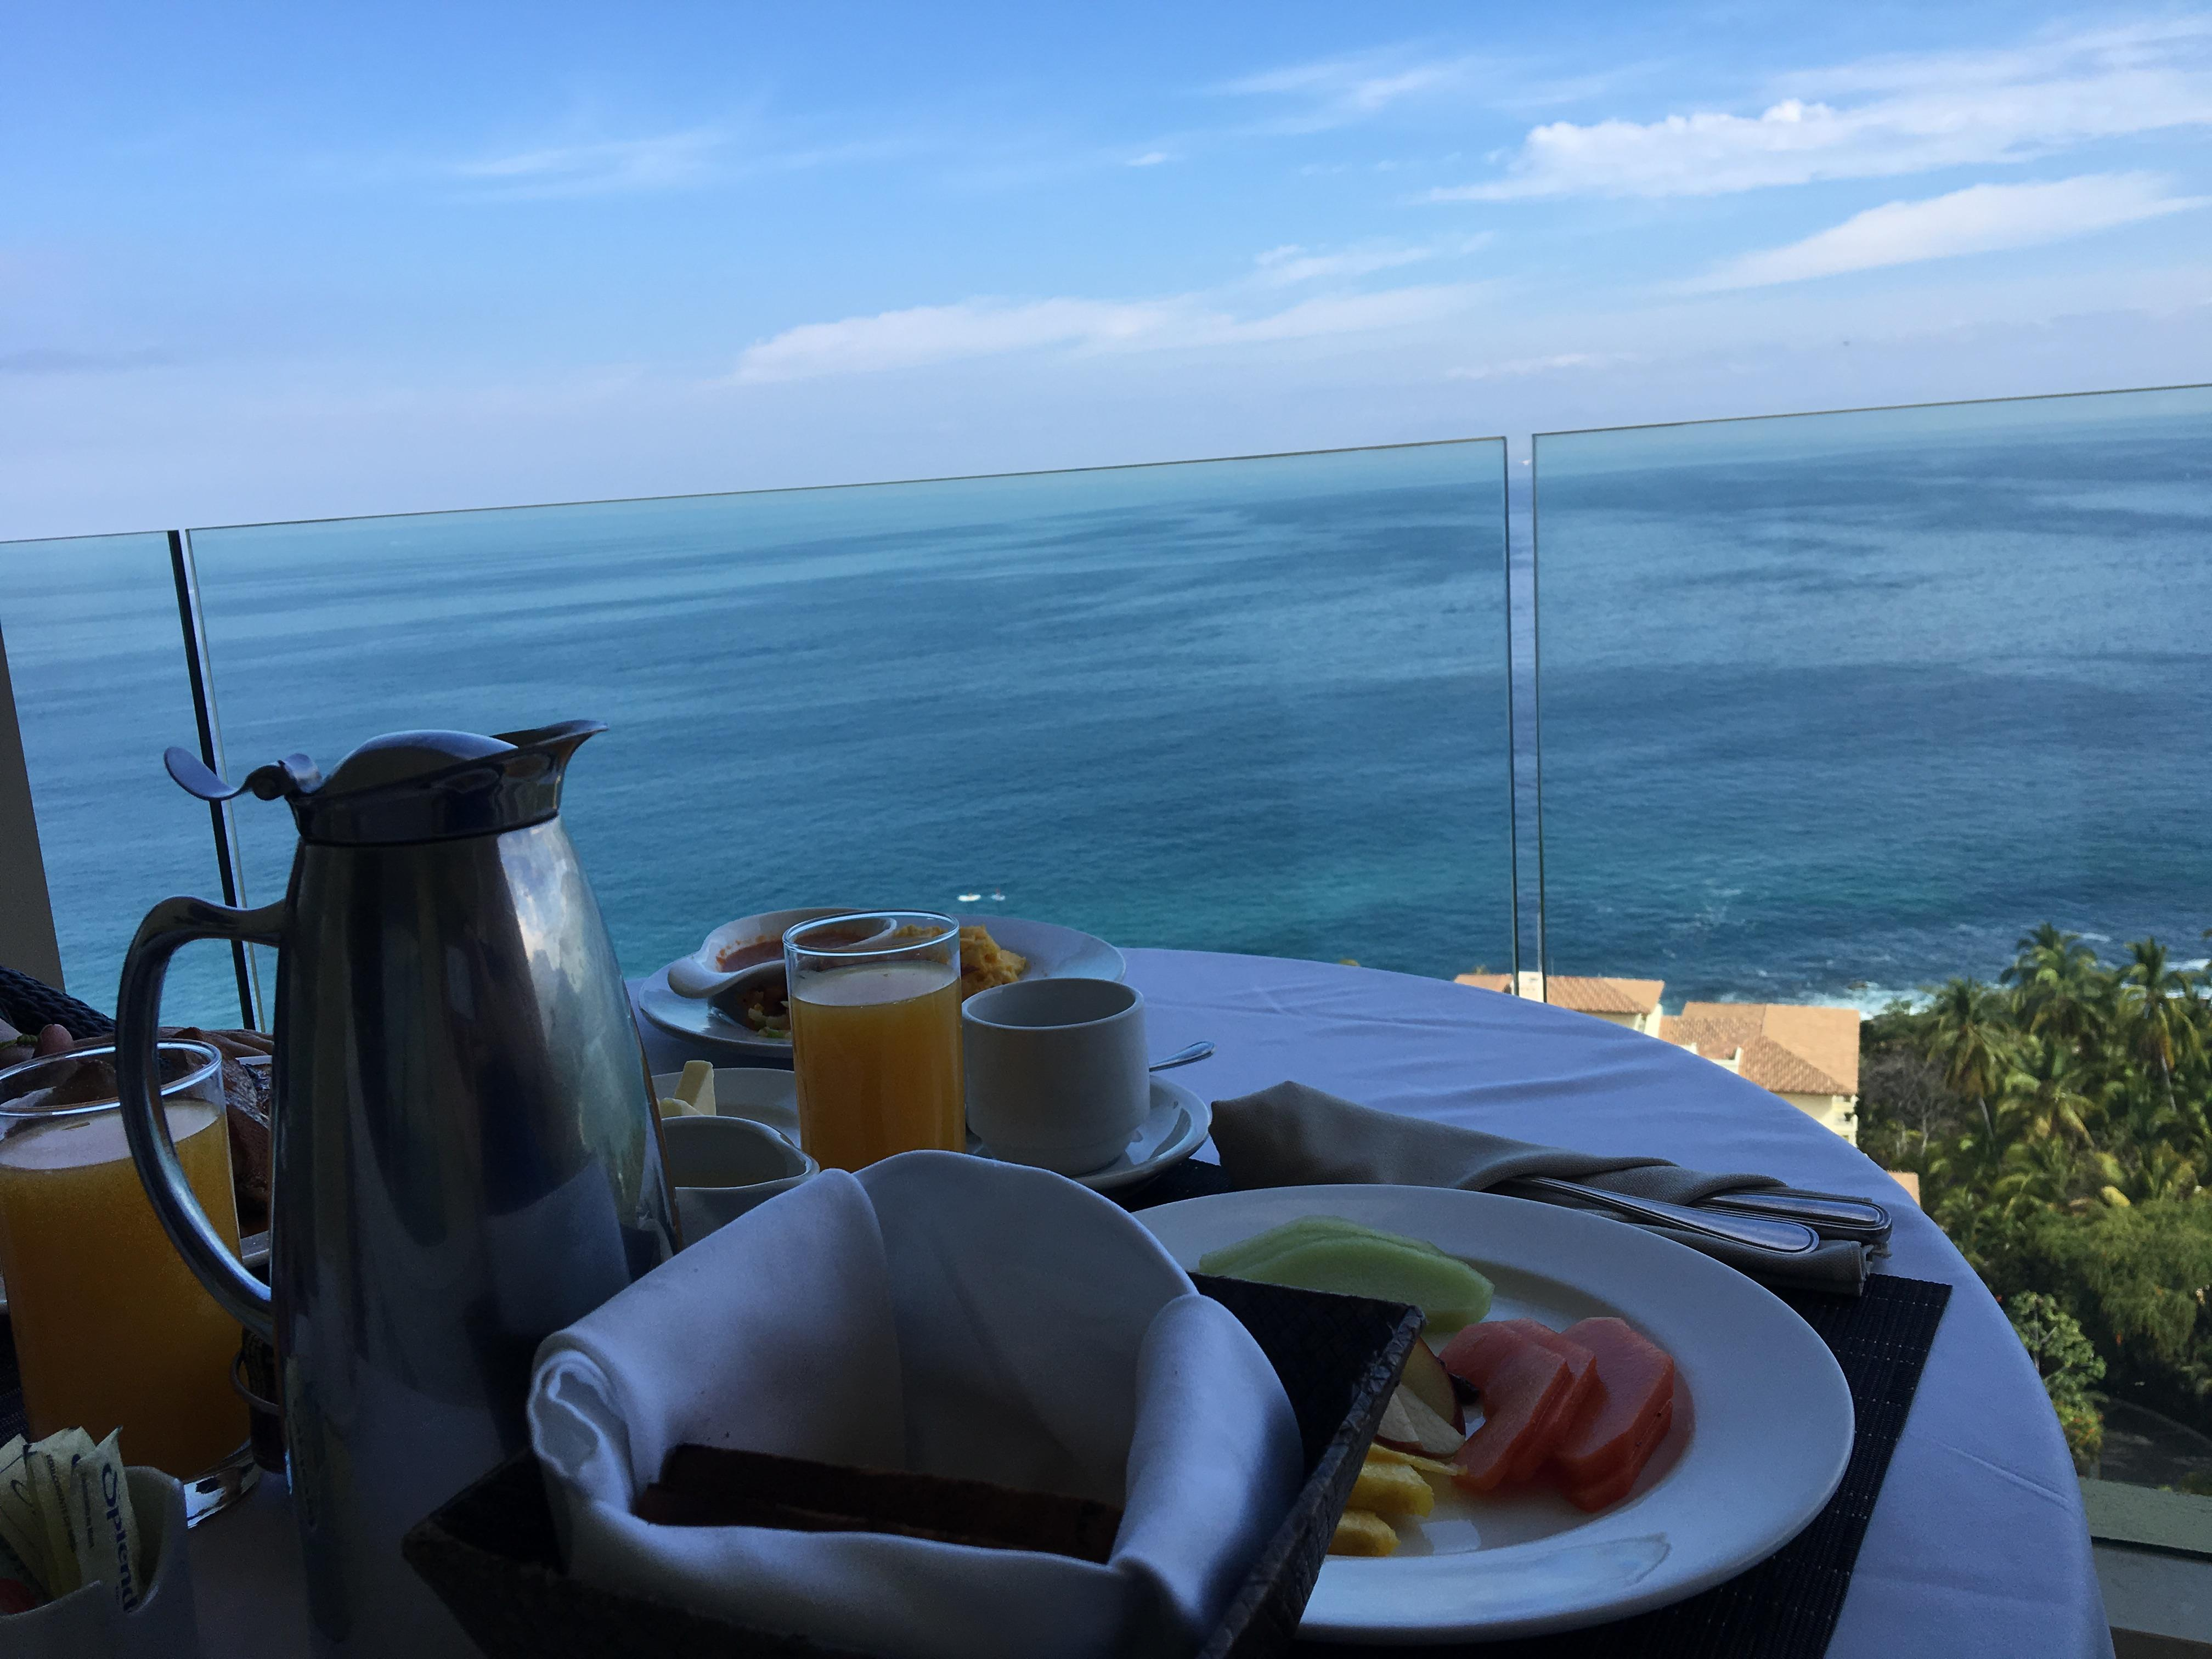 Room service on our balcony